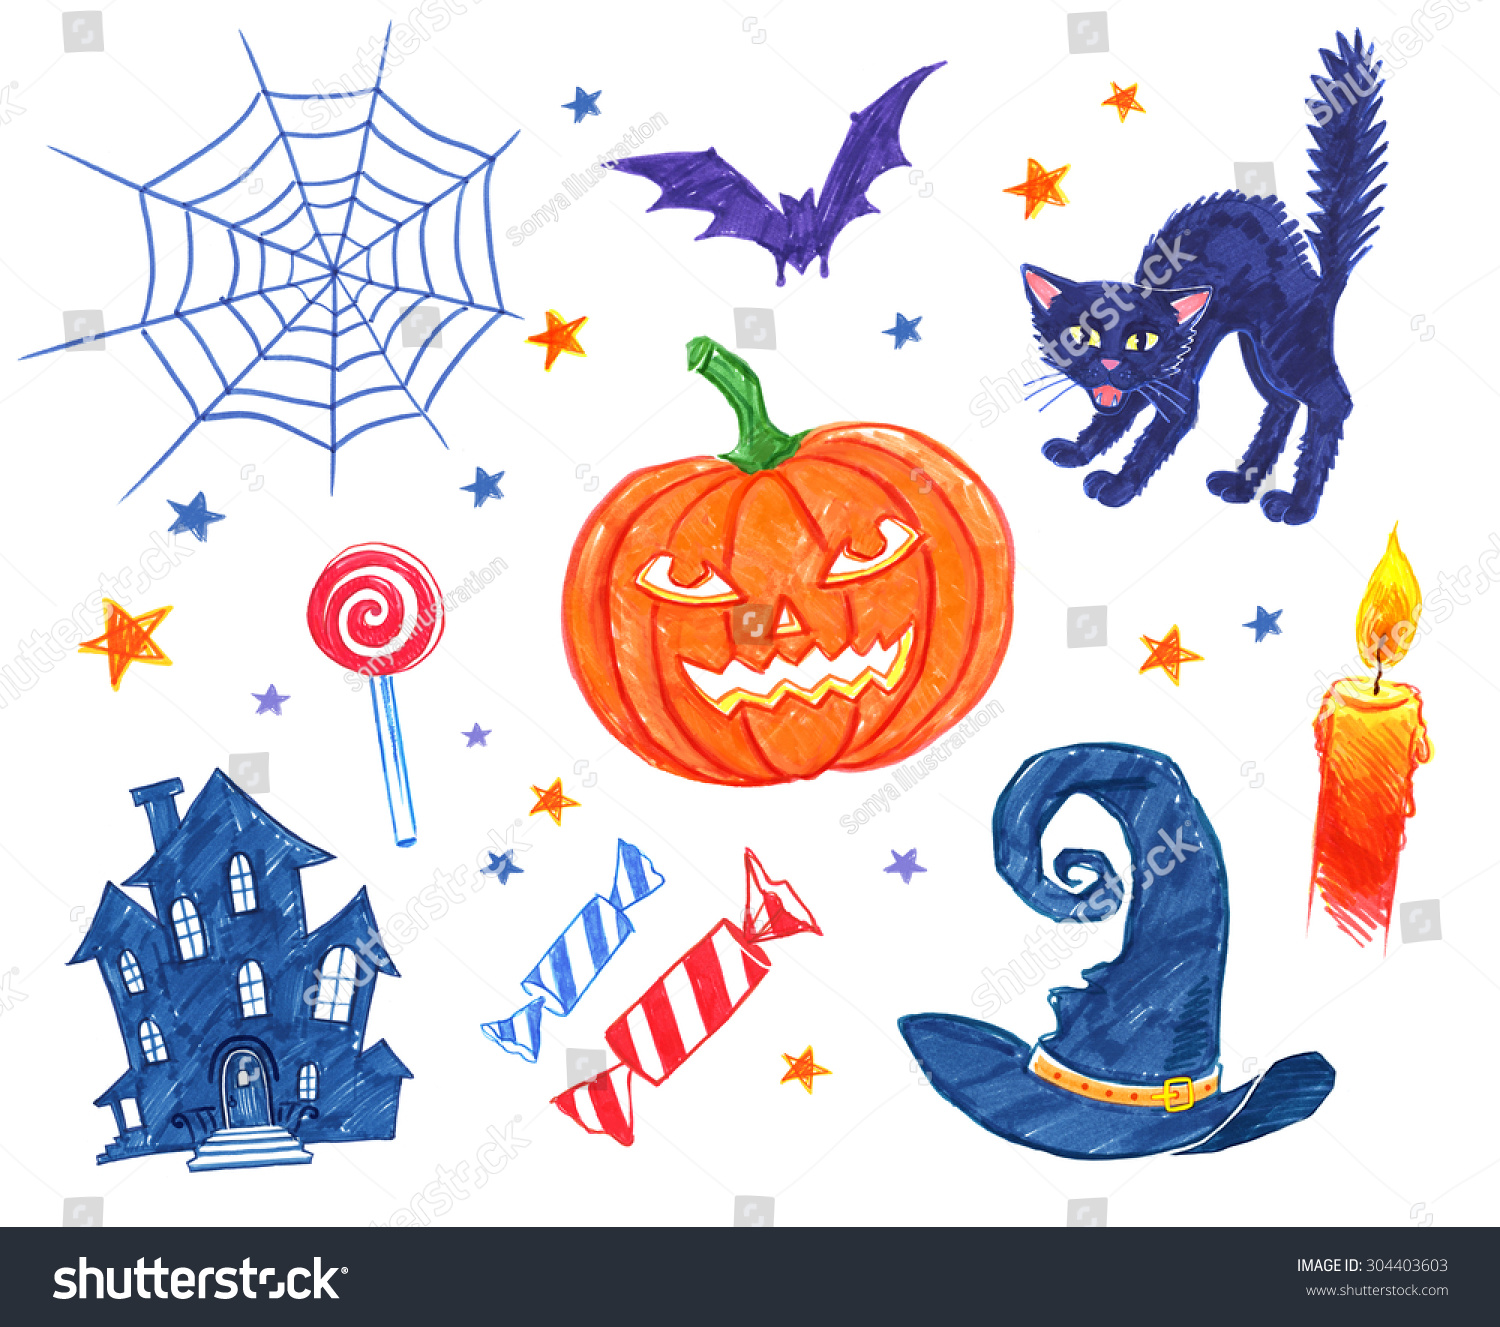 collection felt pen childlike drawings halloween stock illustration